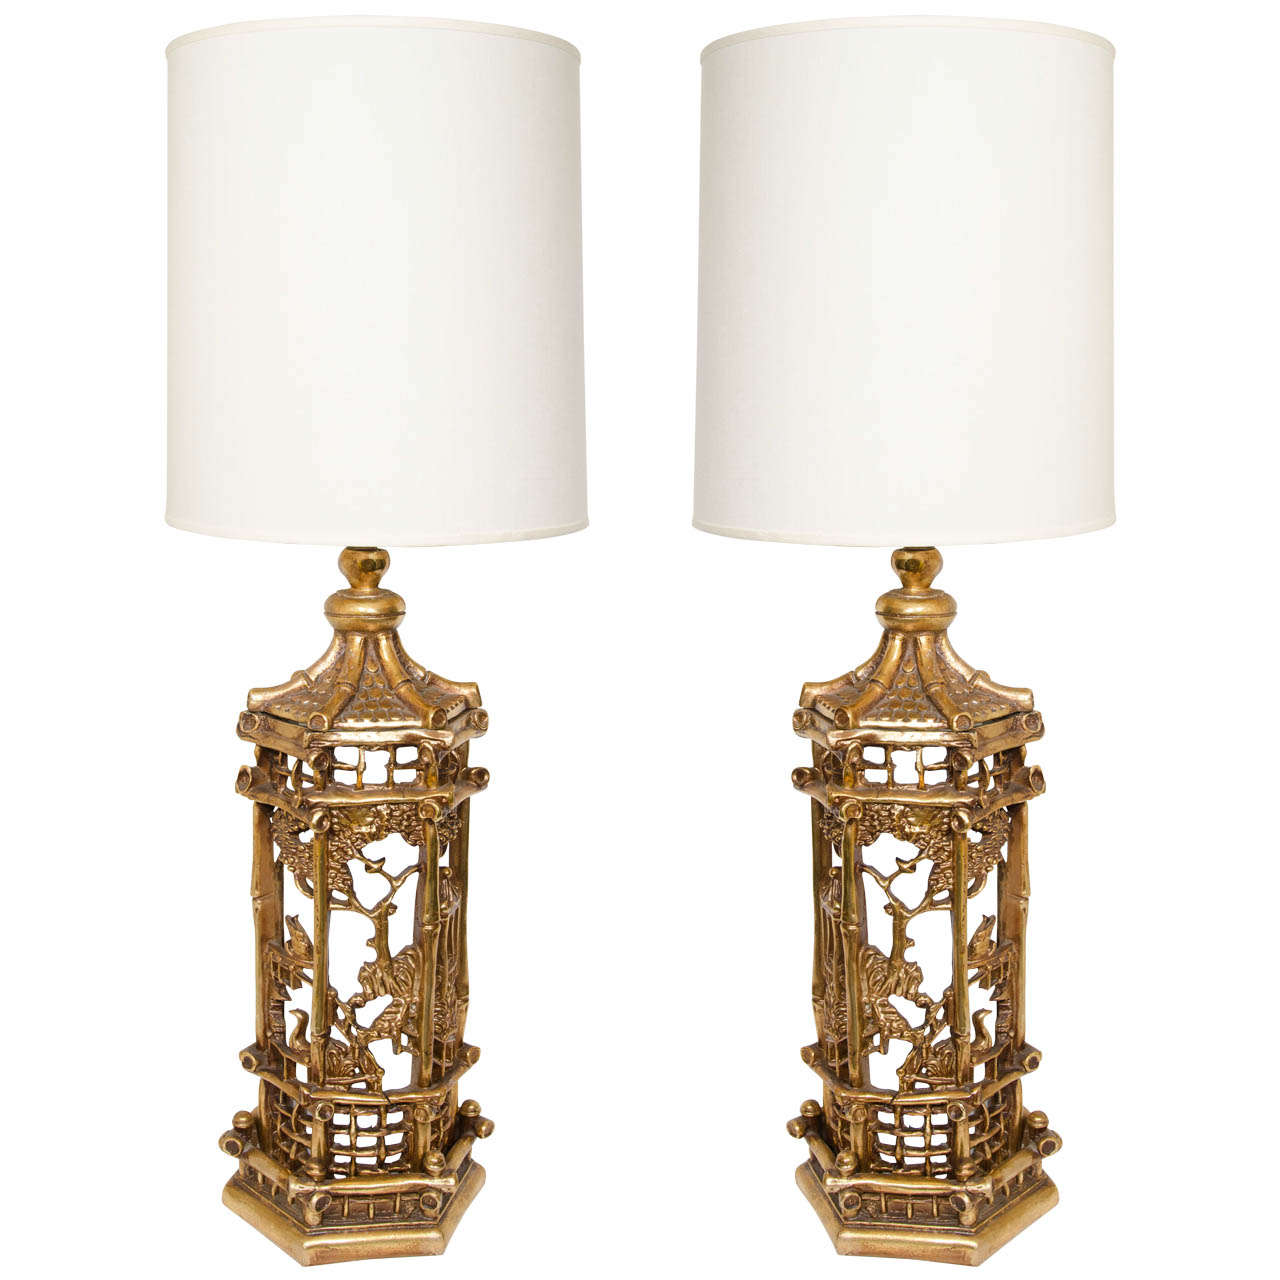 Beautiful Pair Of Exceptional Gilt Chinoiserie Lamps In The Manner Of James Mont For  Sale